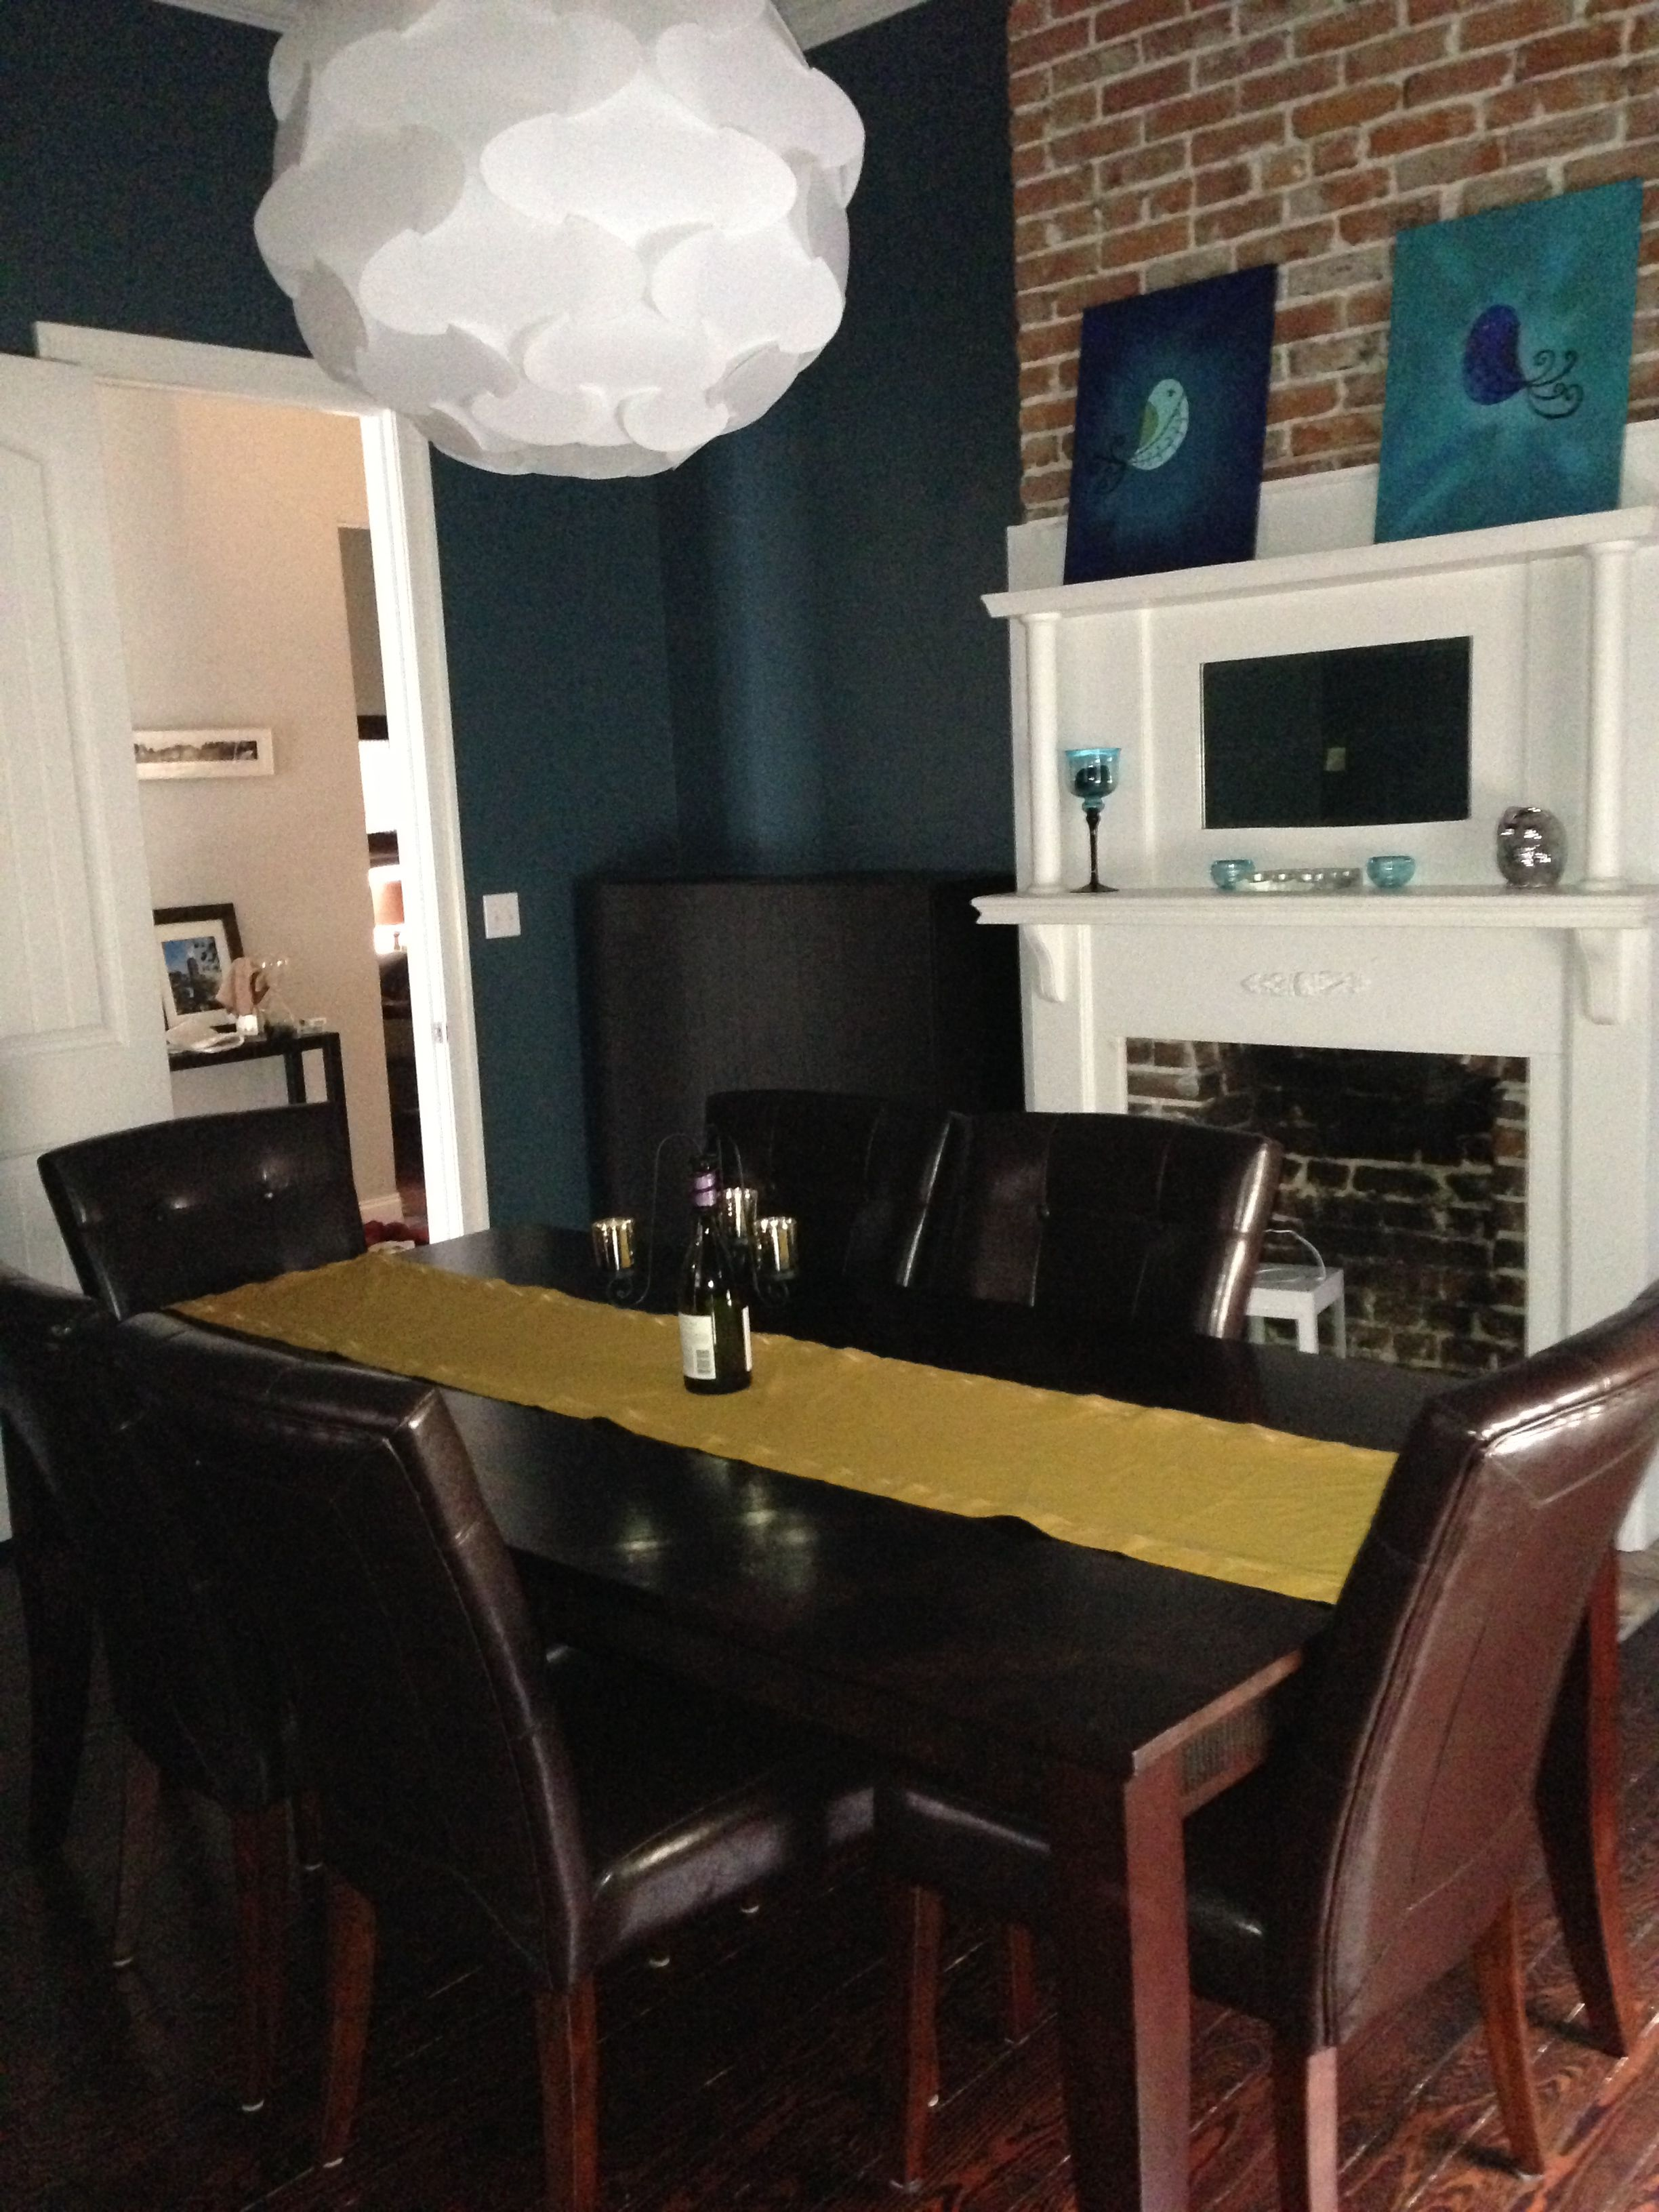 New Dining Room Color Tempe Star From Sherwin Williams Dining Room Colors Dining Room Walls Room Colors